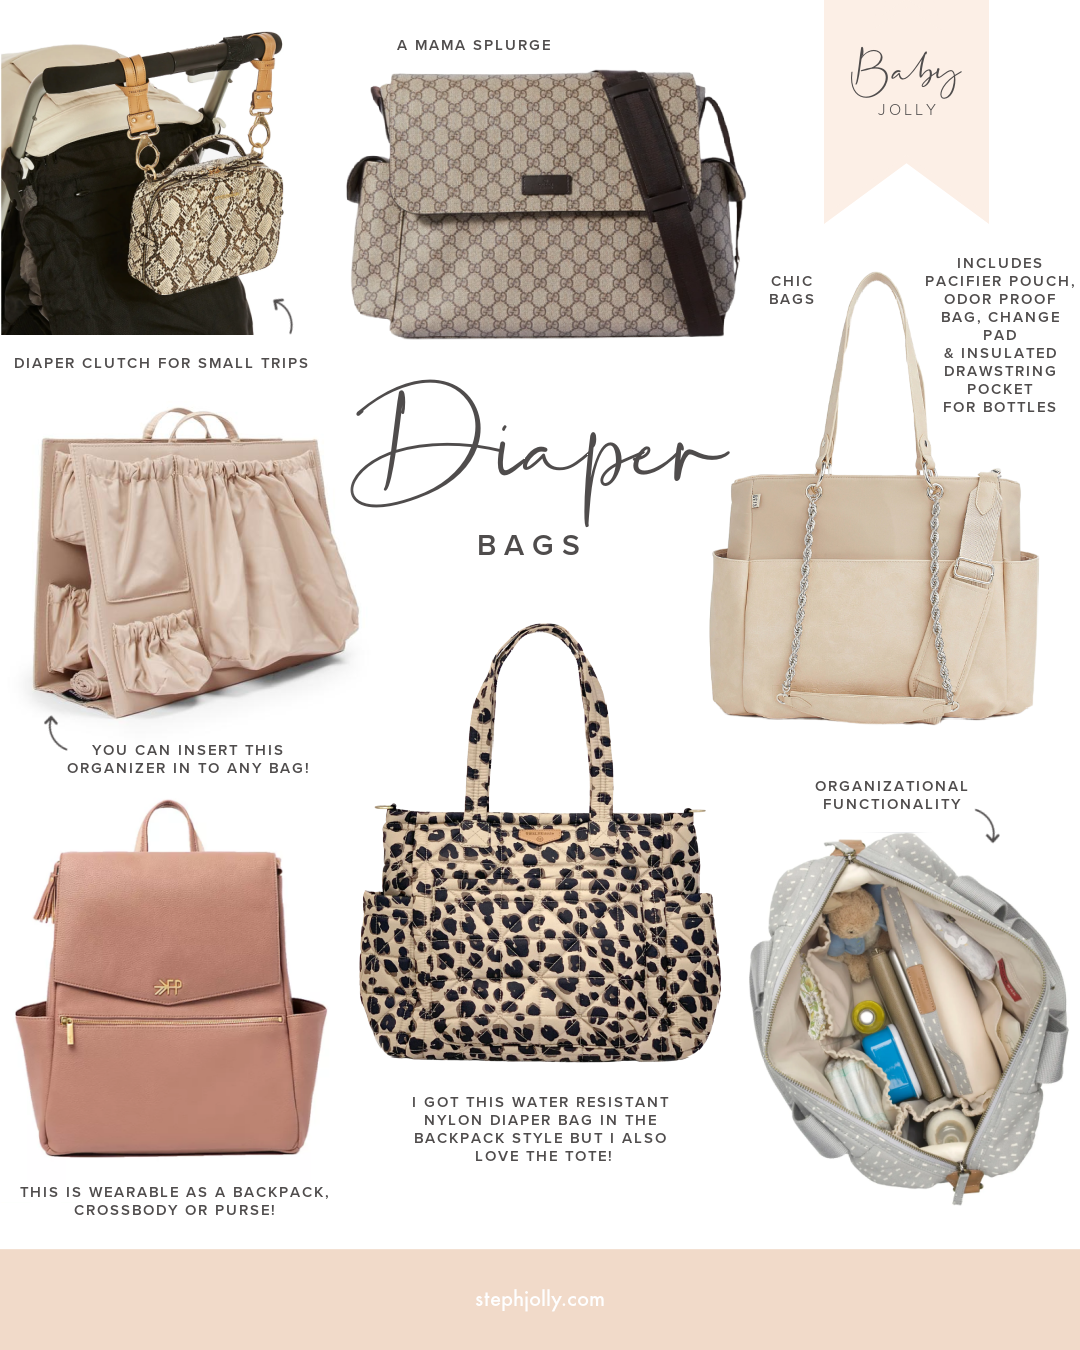 DIAPER-BAGS-STEPH-JOLLY